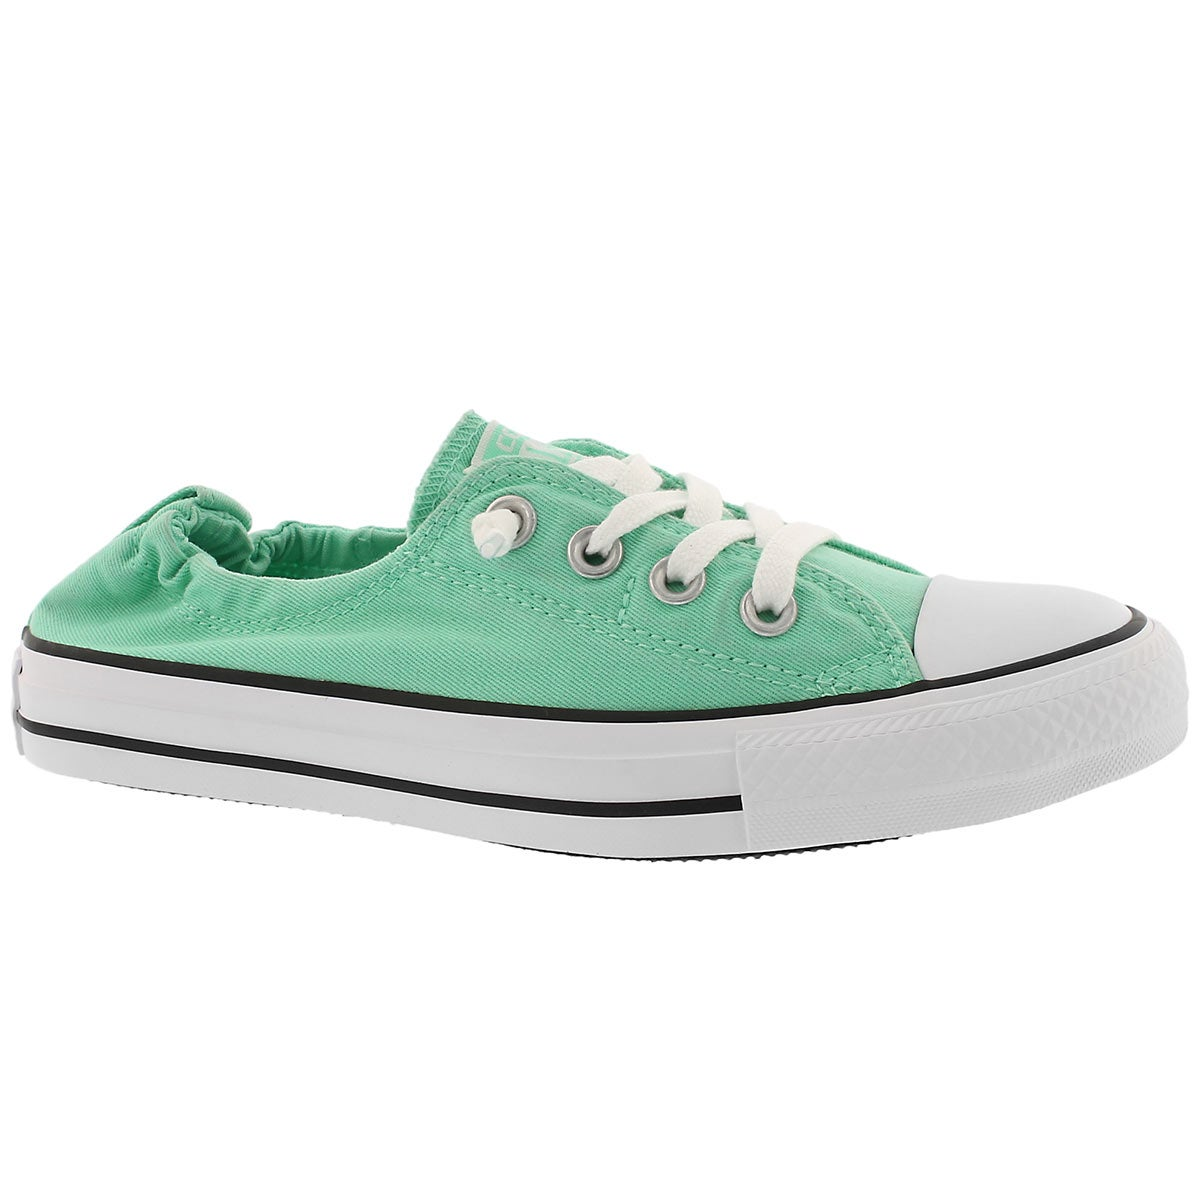 Women's CT ALL STAR SHORELINE green glow sneakers